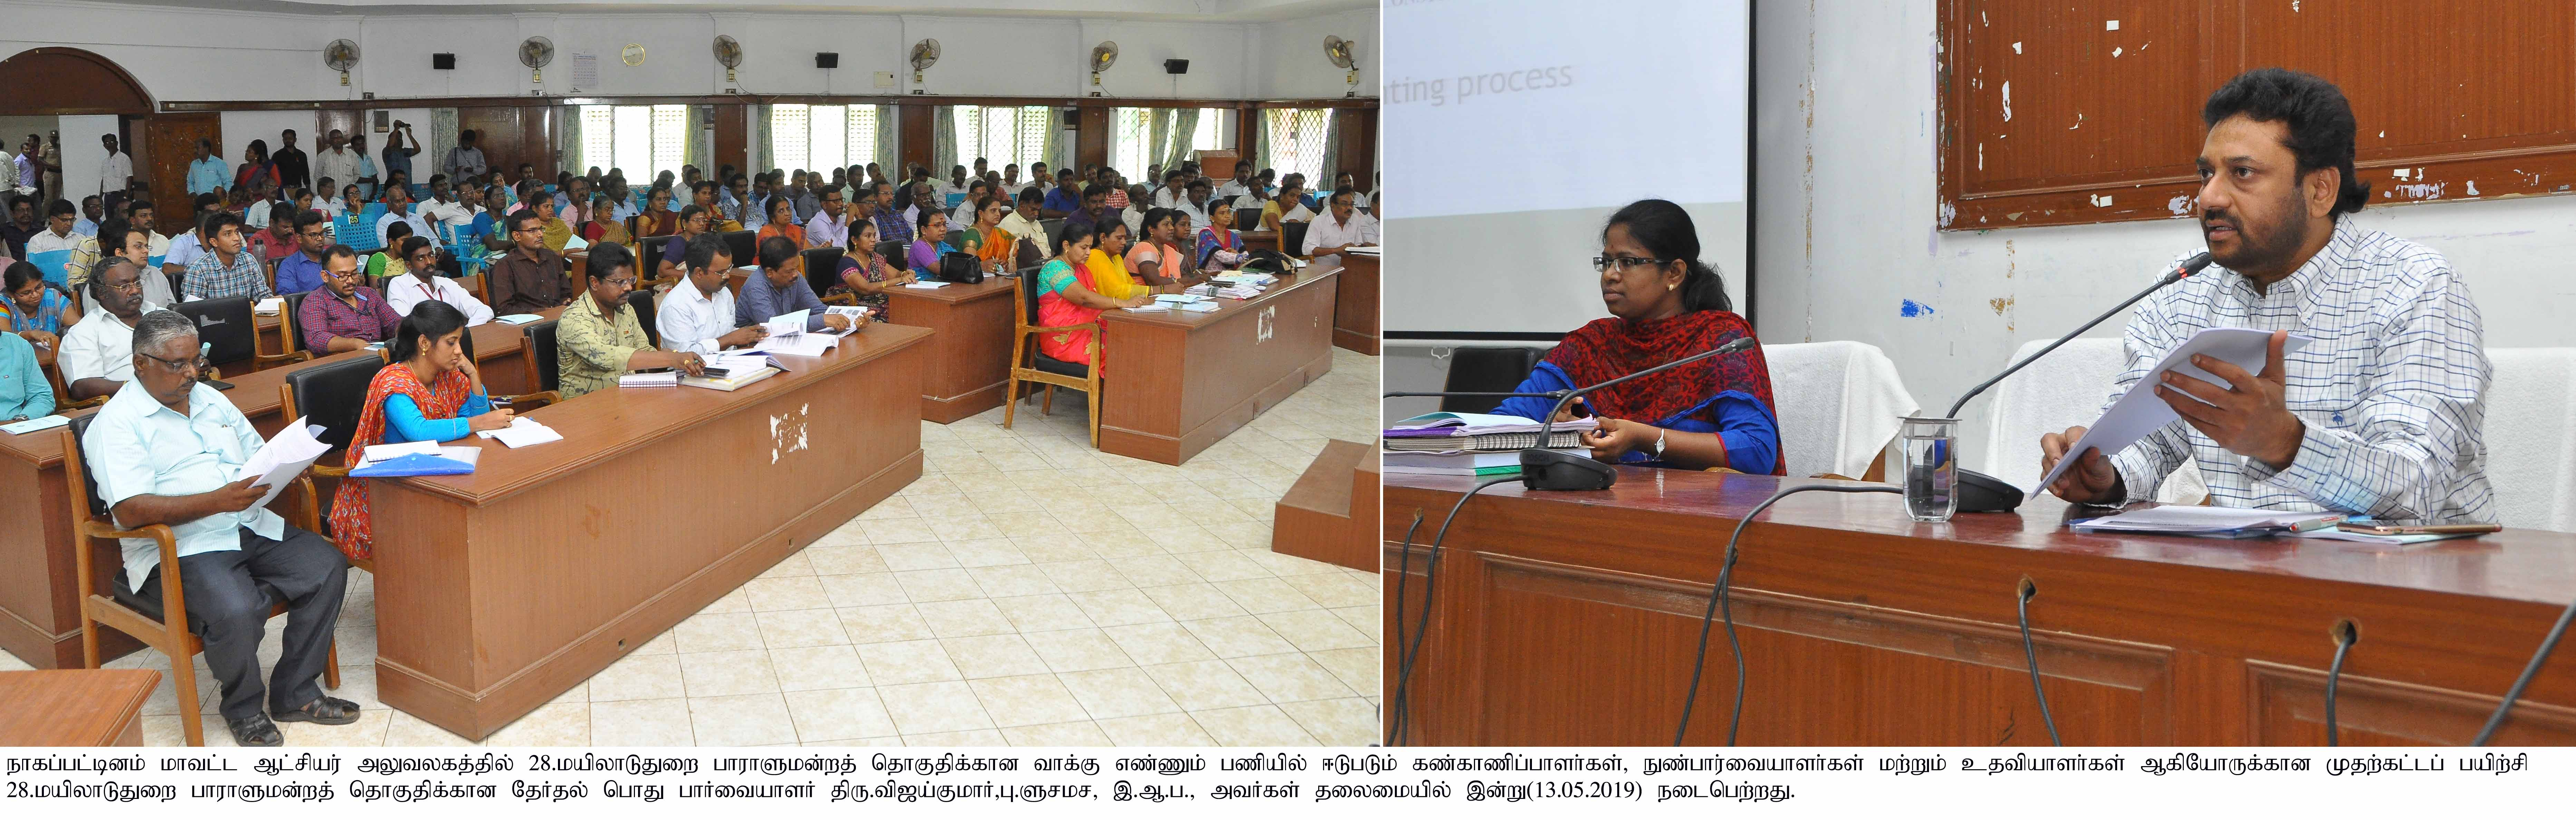 General Observer, Vijaykumar I.A.S held a meeting to oversee the various activities related to the counting work.